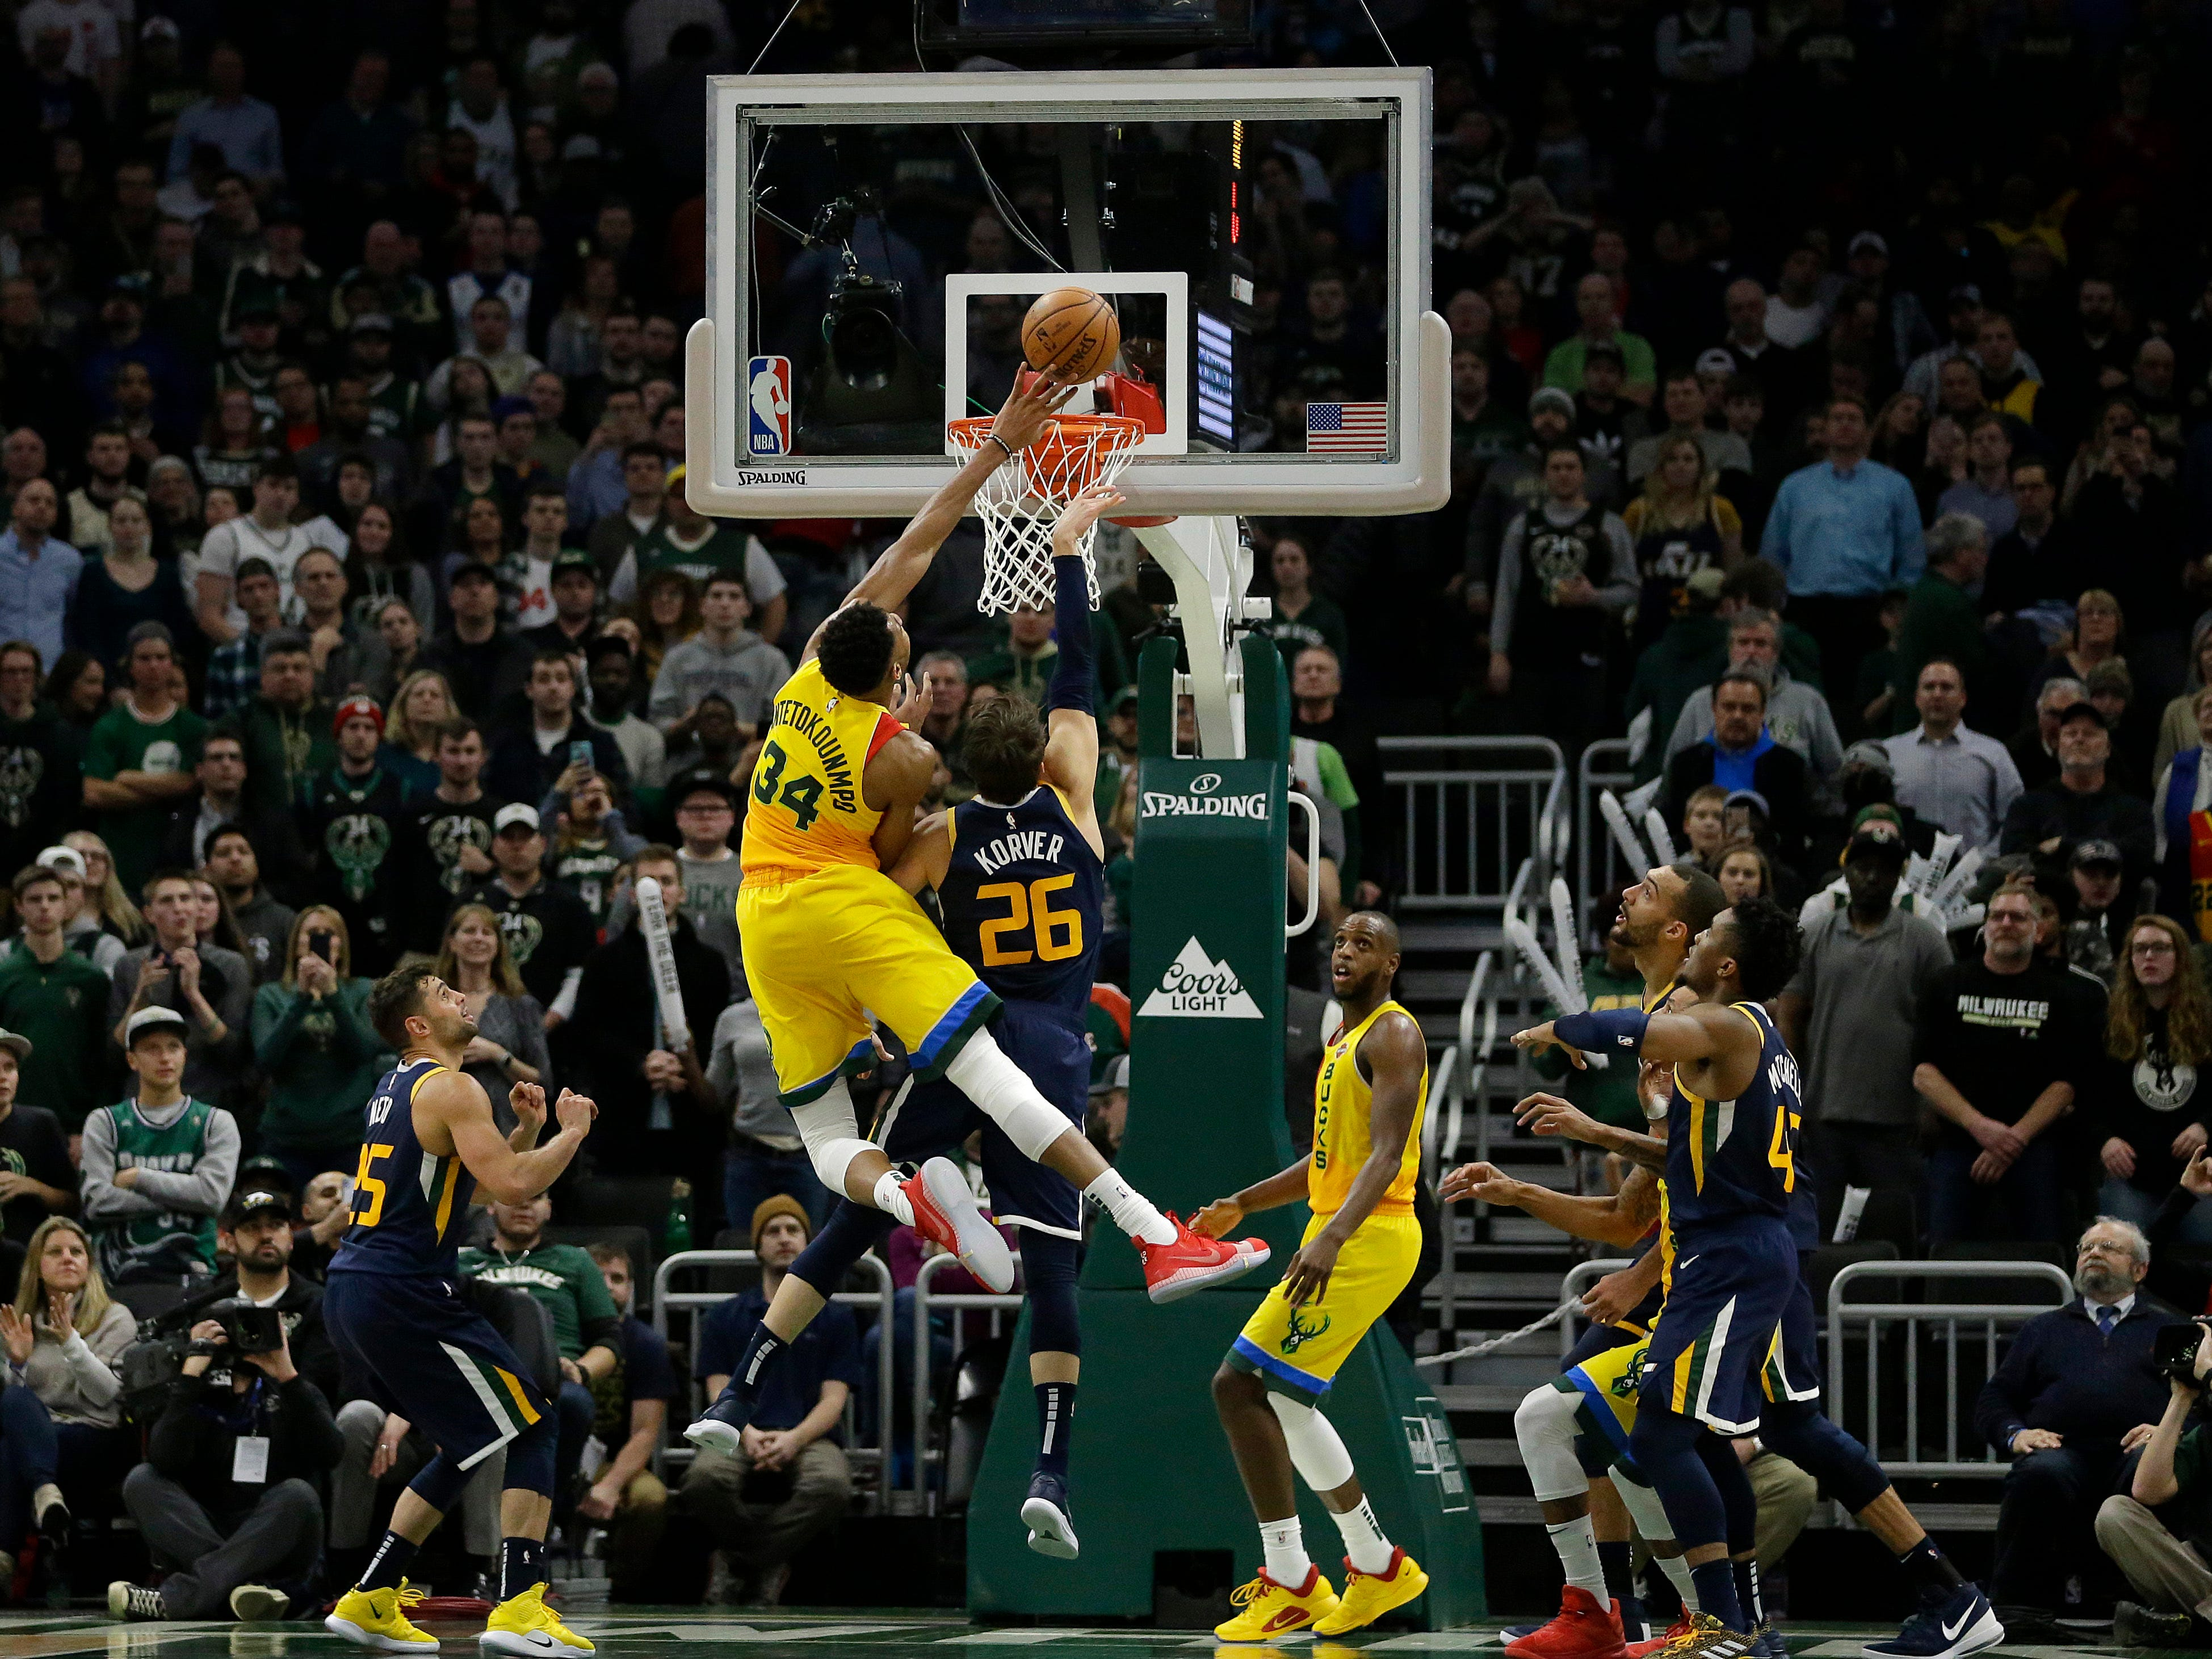 Giannis Antetokounmpo of the Bucks tips in a shot over the Jazz's Kyle Korver during the second half Monday.